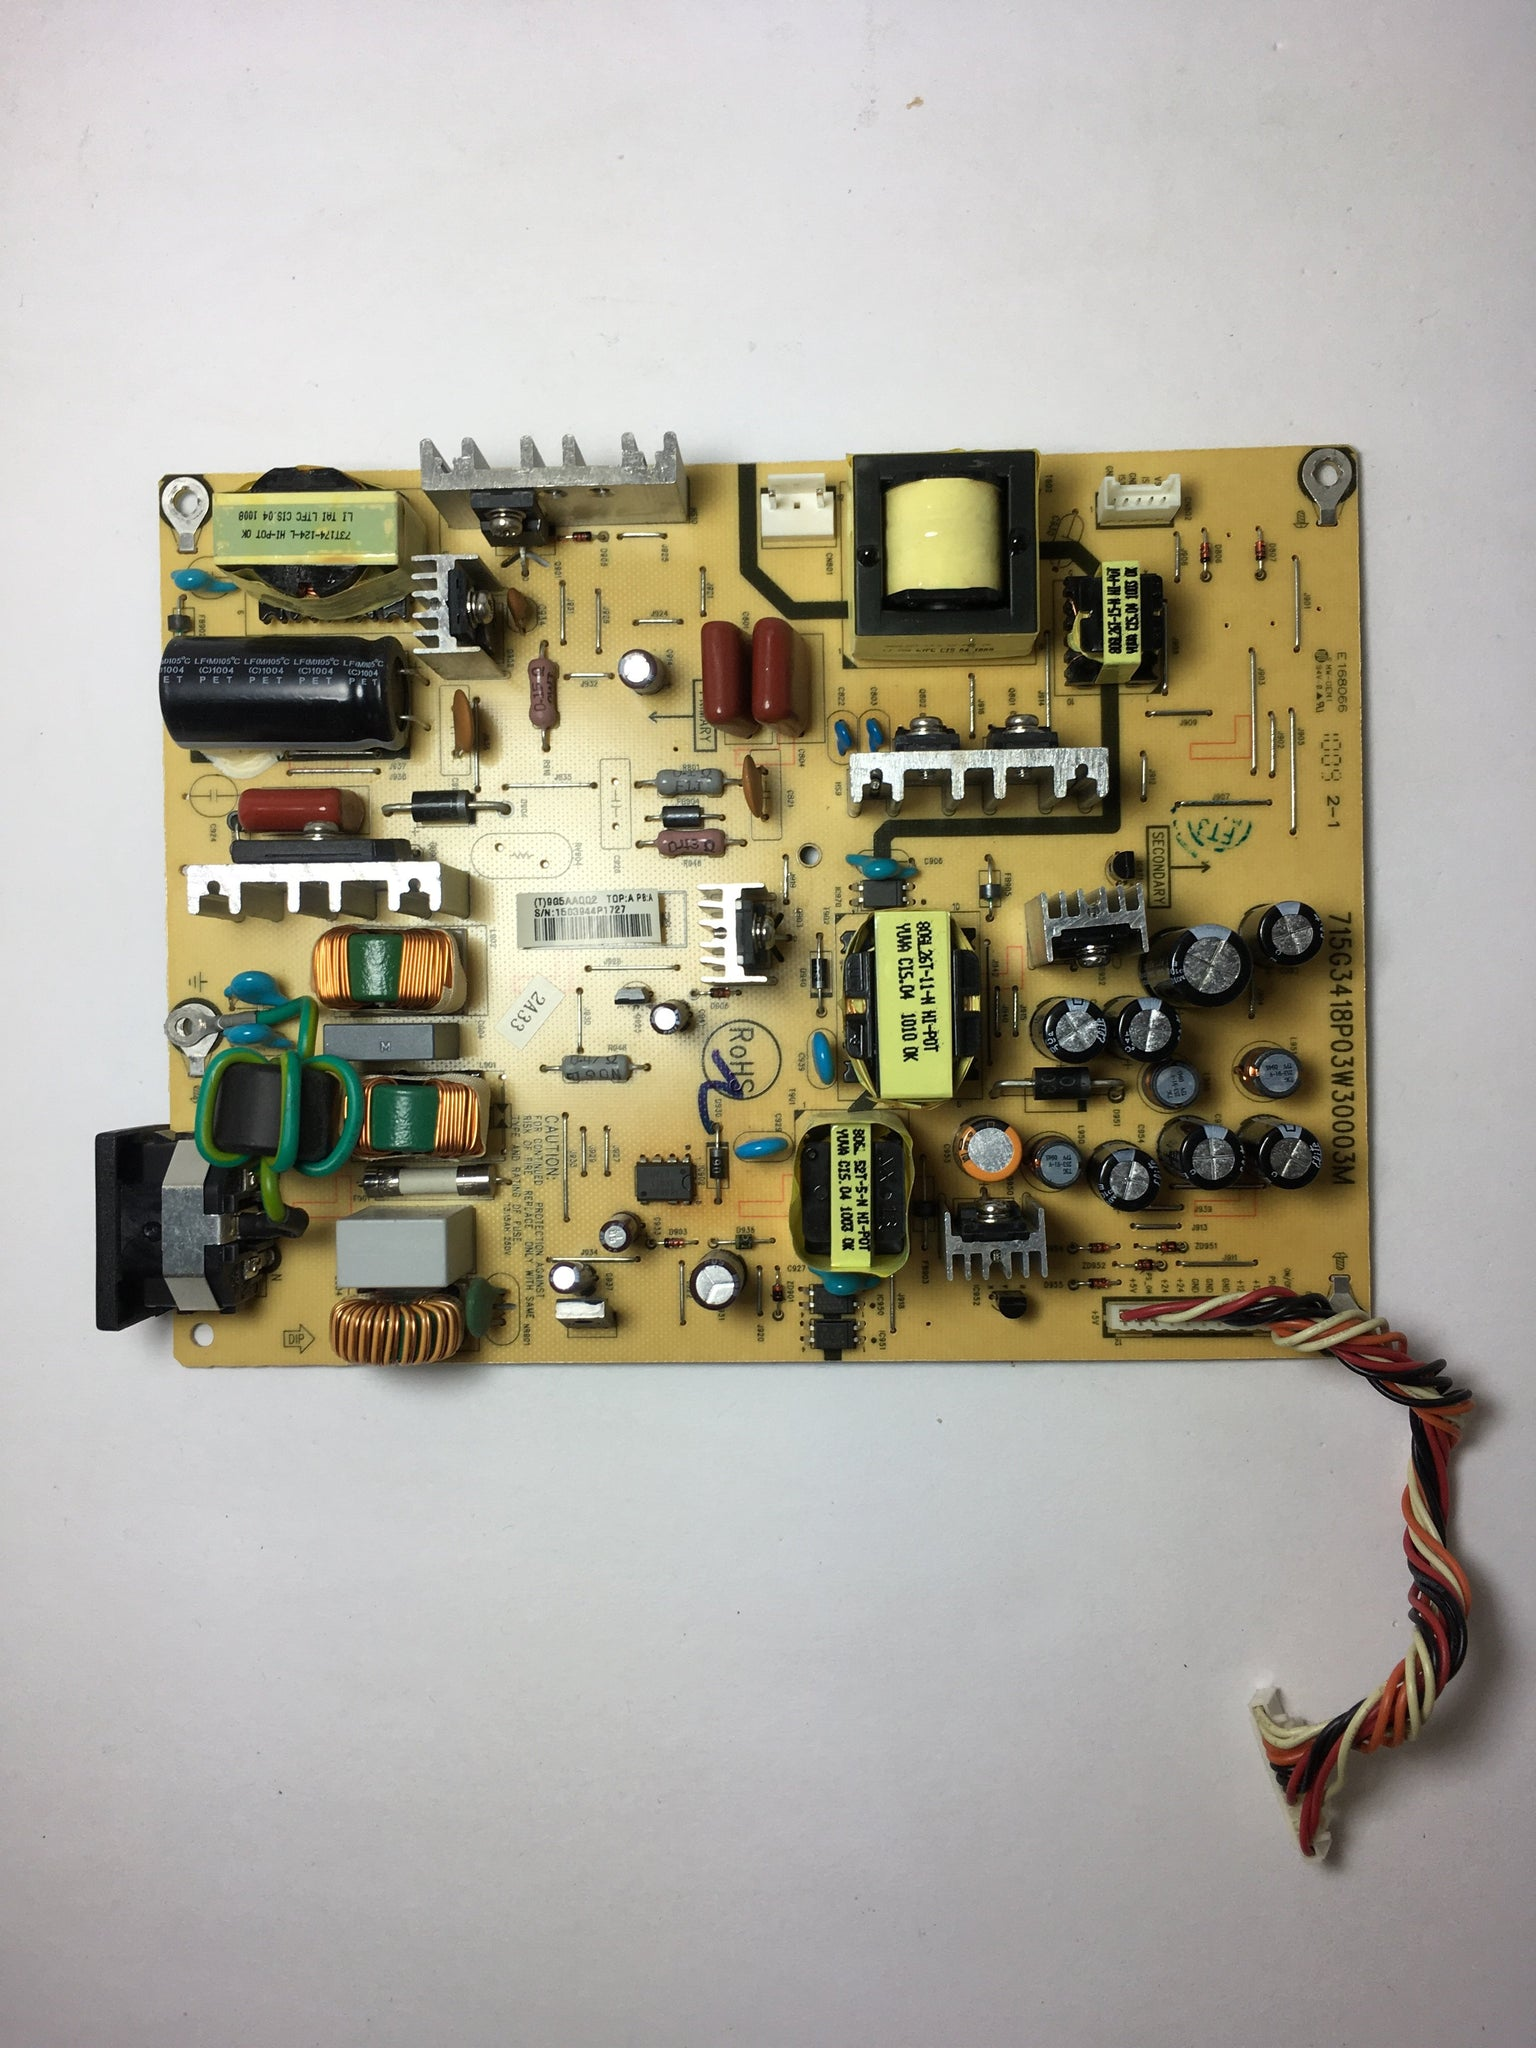 Vizio PWTV9G5AAQQ2 Power Supply for VA26LHDTV10T